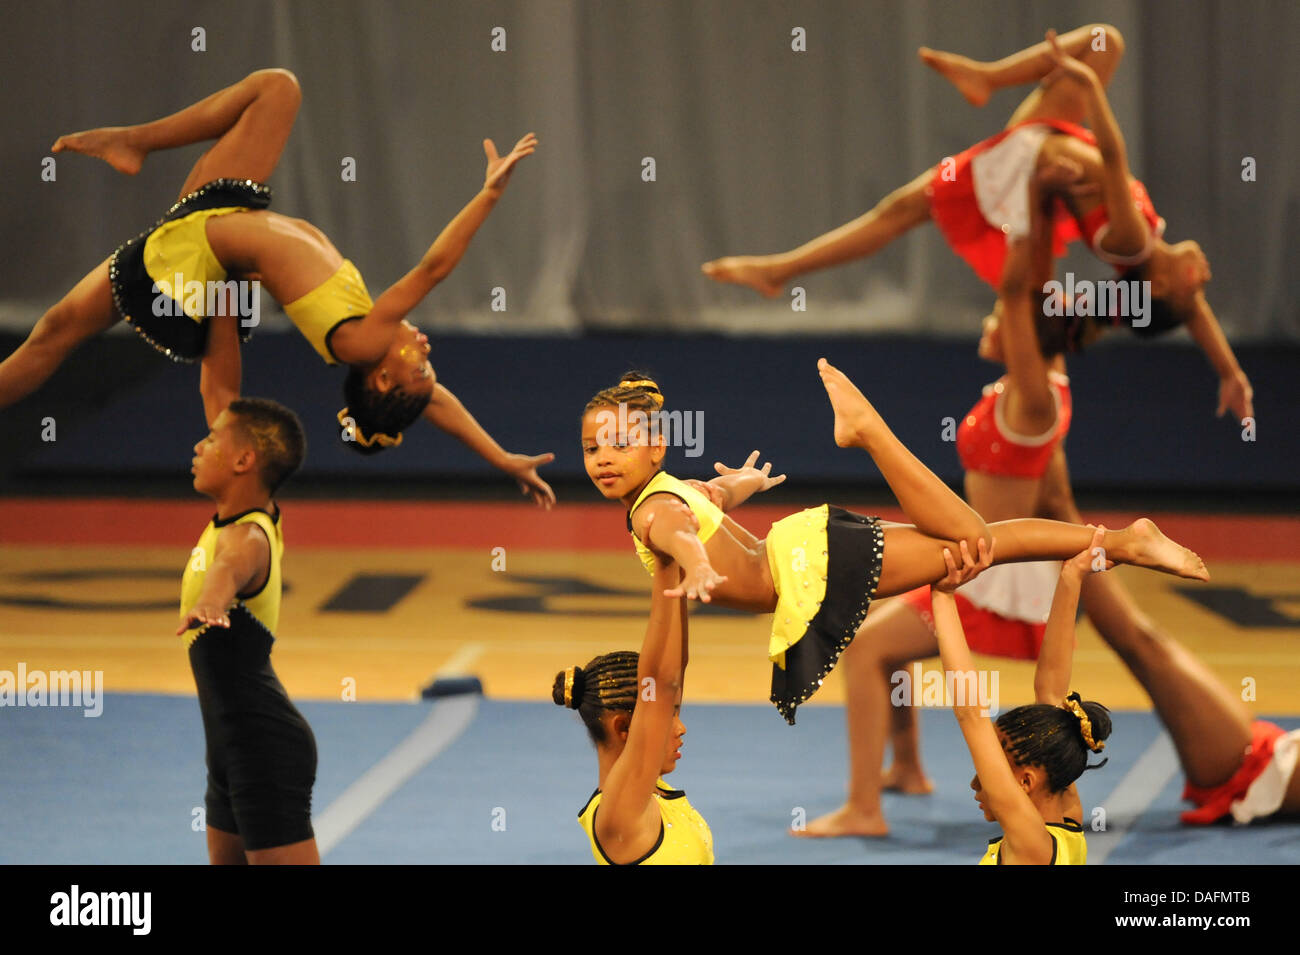 CAPE TOWN, SOUTH AFRICA - Friday 12 July 2013, members of Golden Lions Gymnastics in Johannesburg perform during - Stock Image